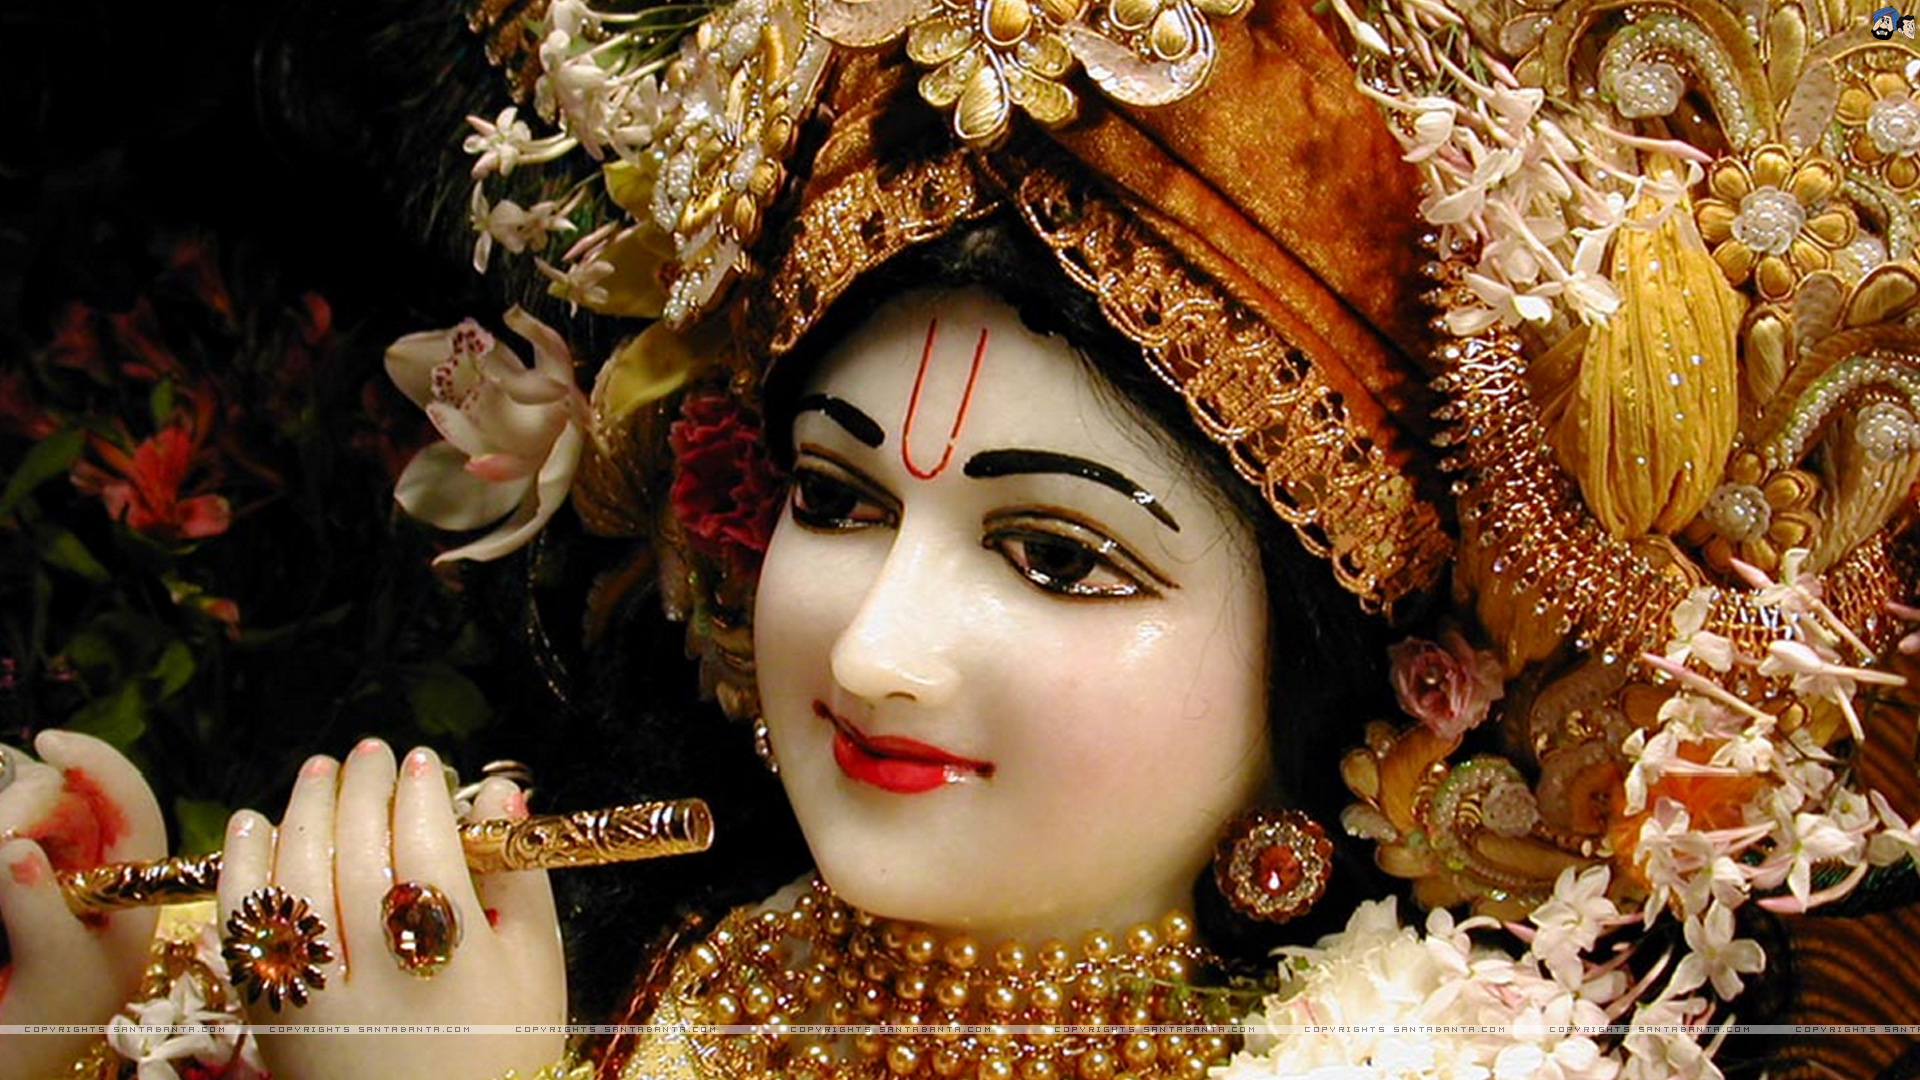 10 reasons why Lord Krishna's favourite butter is healthy